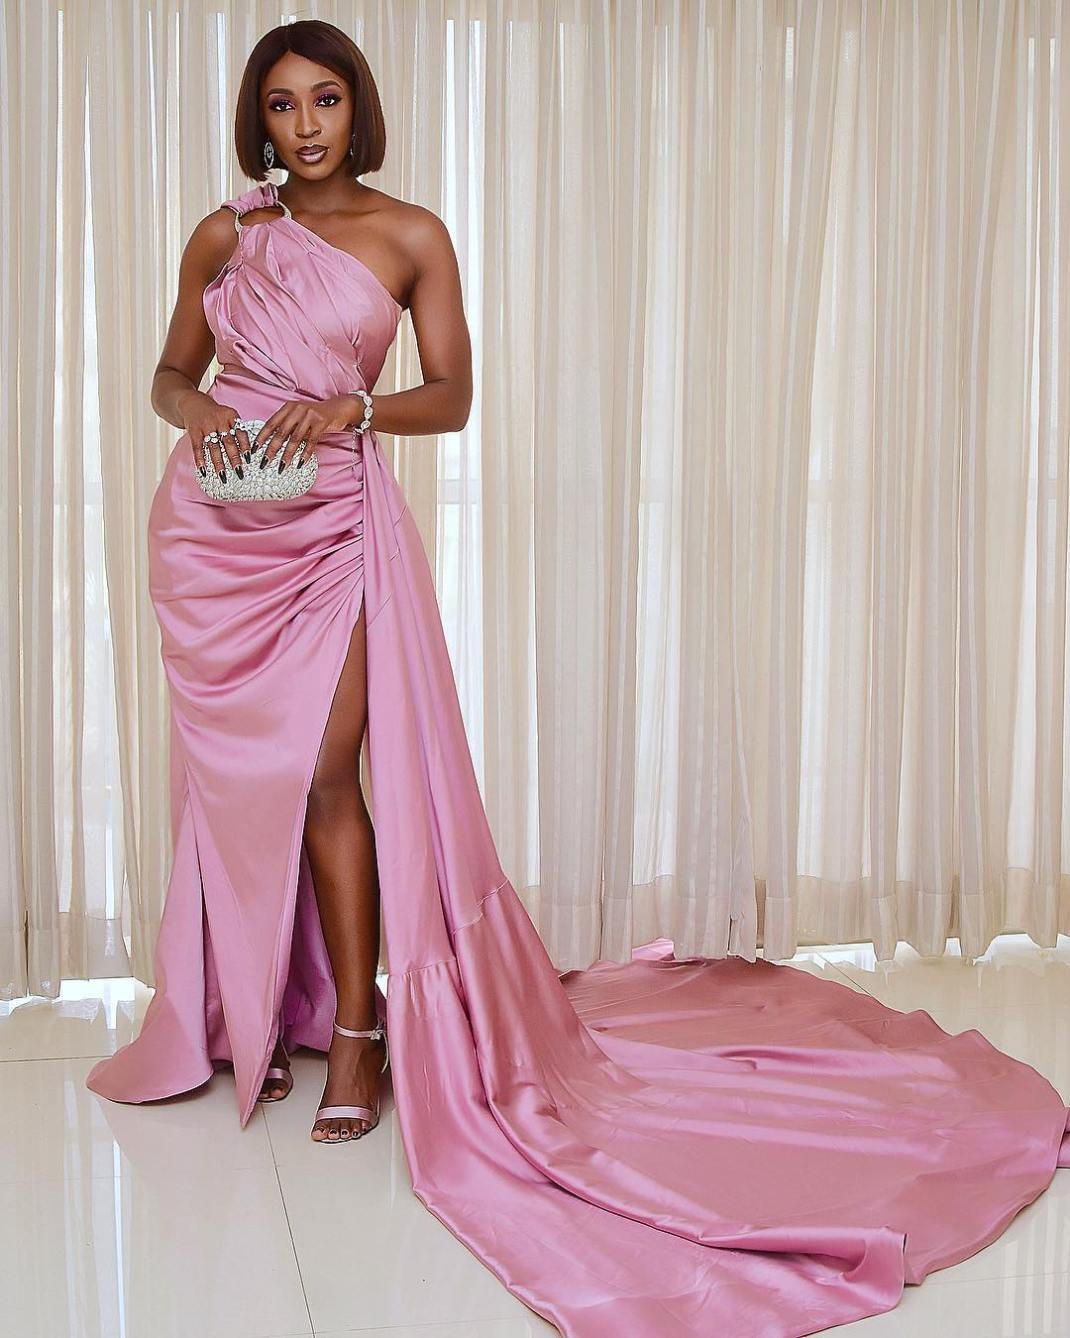 Media personality, Seyi Atigarin wore this stunning dress to the Film Gala